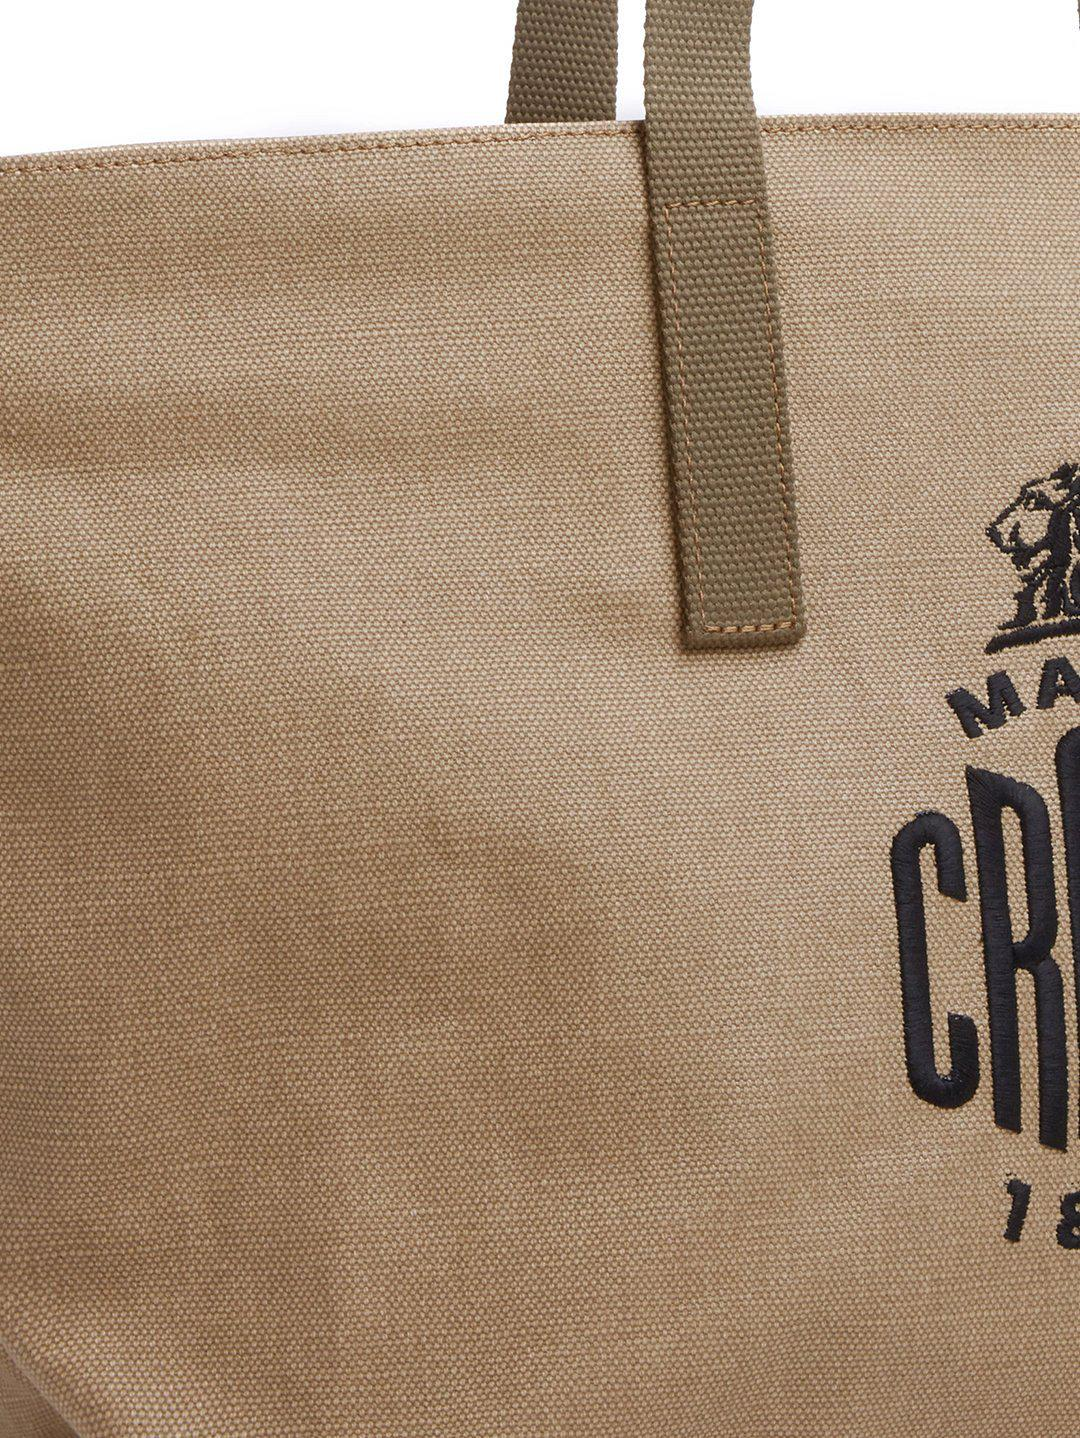 Weatherbird Canvas Small Tote Bag 4